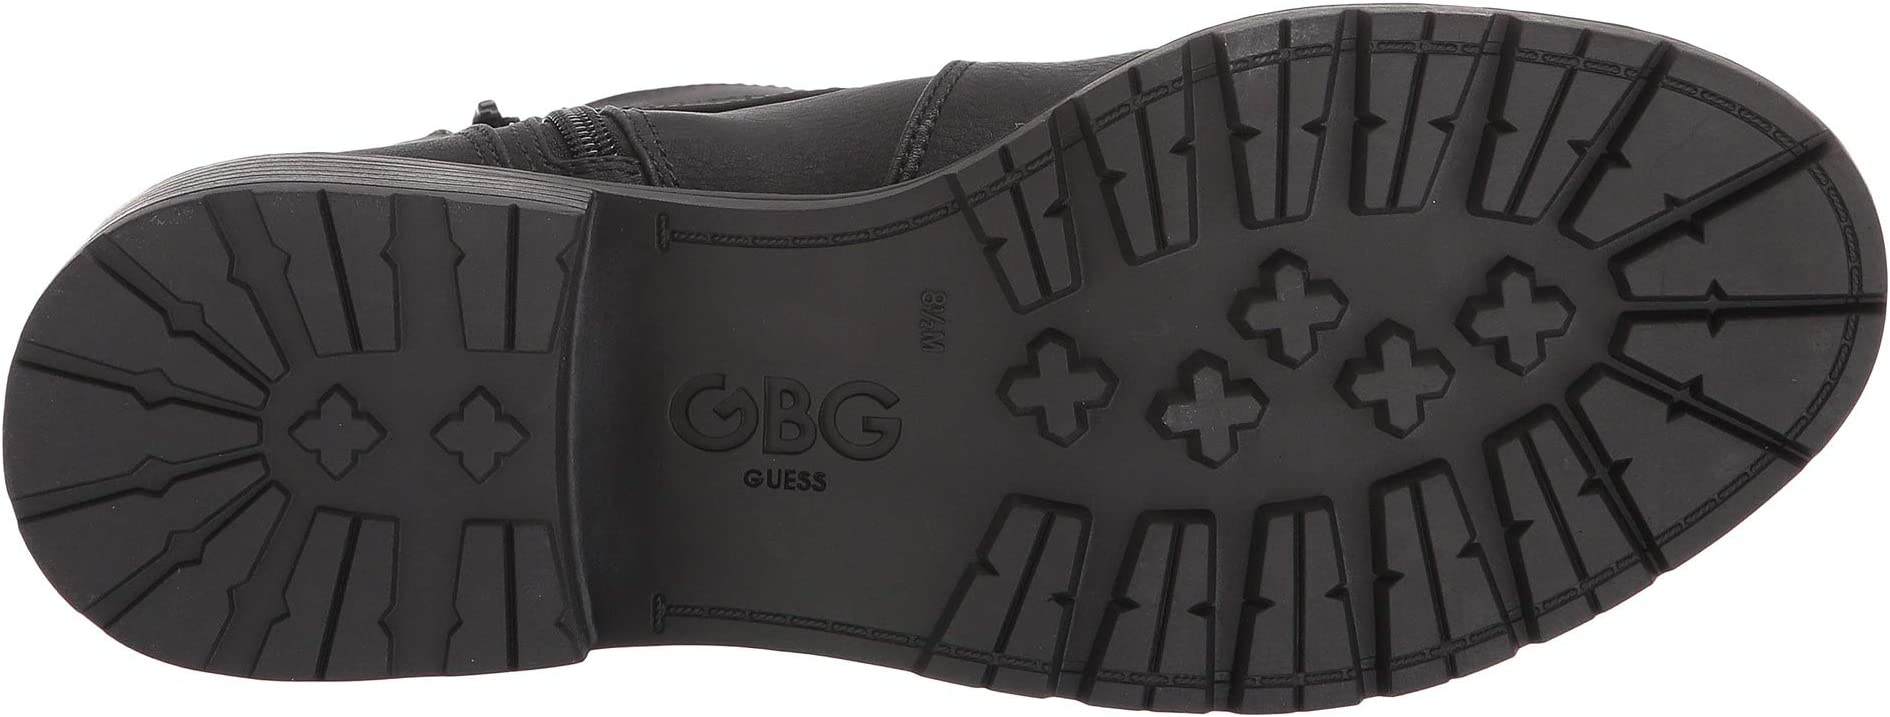 GBG Los Angeles Tobey | Women's shoes | 2020 Newest